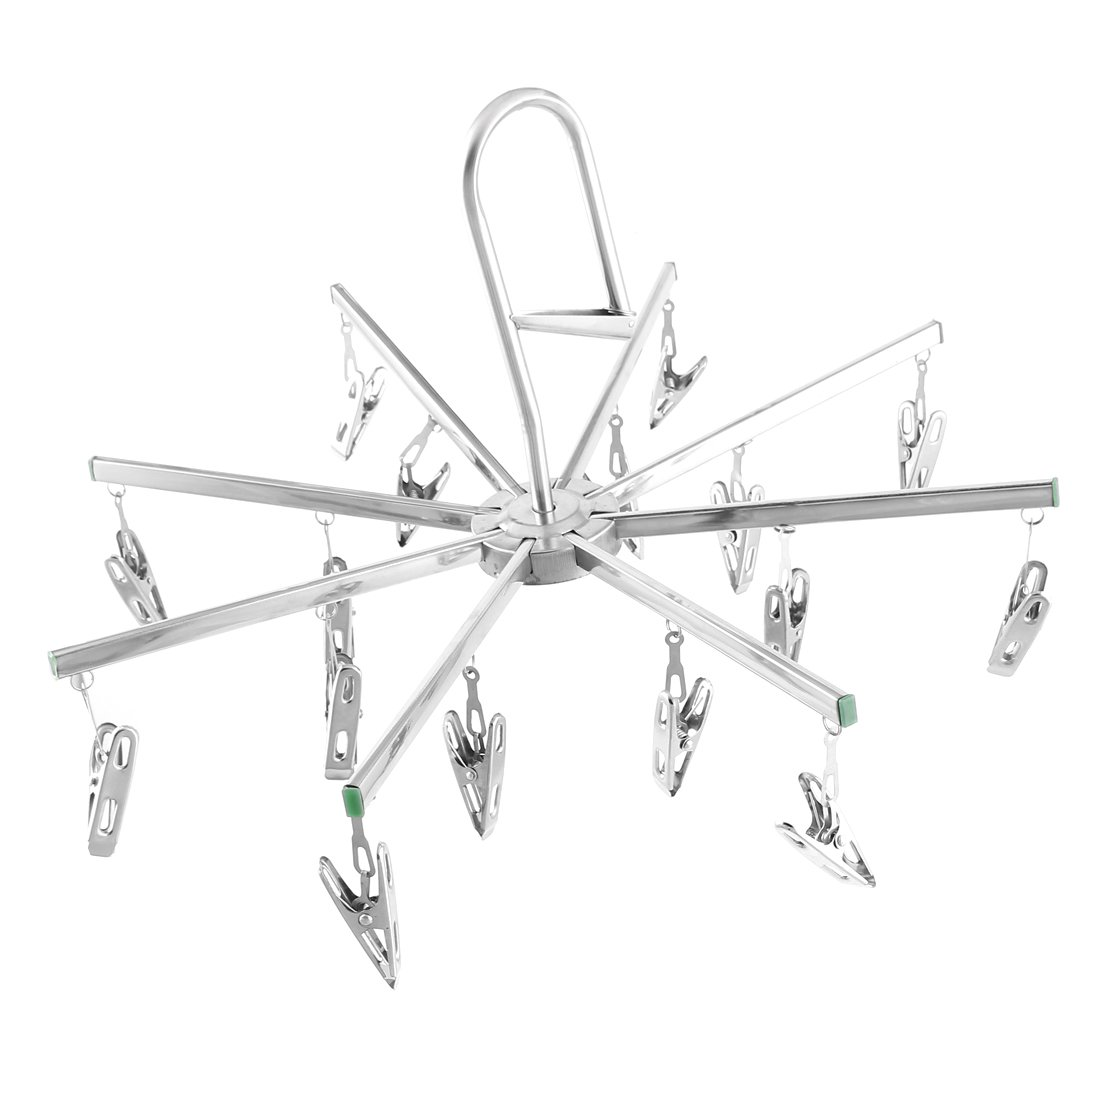 uxcell Stainless Steel Shower Clothing Cap Towels 16 Clips Foldable Hanger